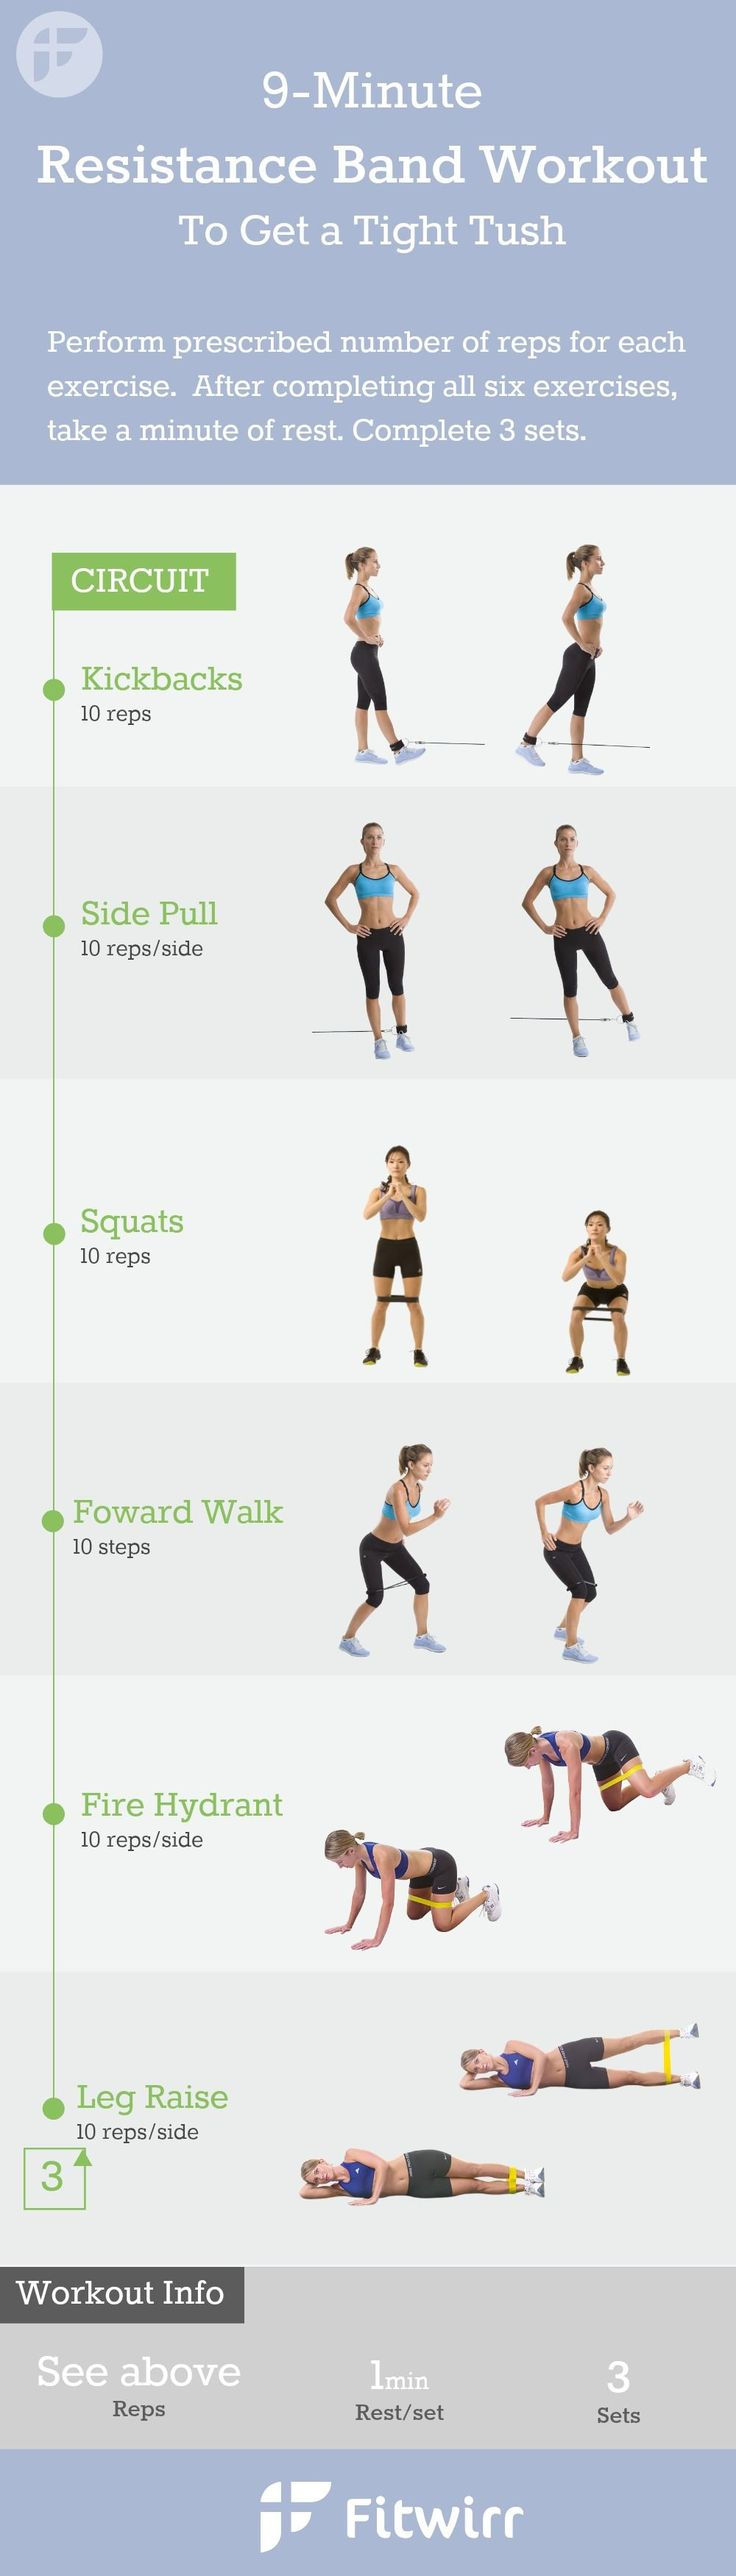 9-Minute Resistance Band Exercises for women. You don't have to lift heavy dumbbells or a medicine ball to get a great workout at